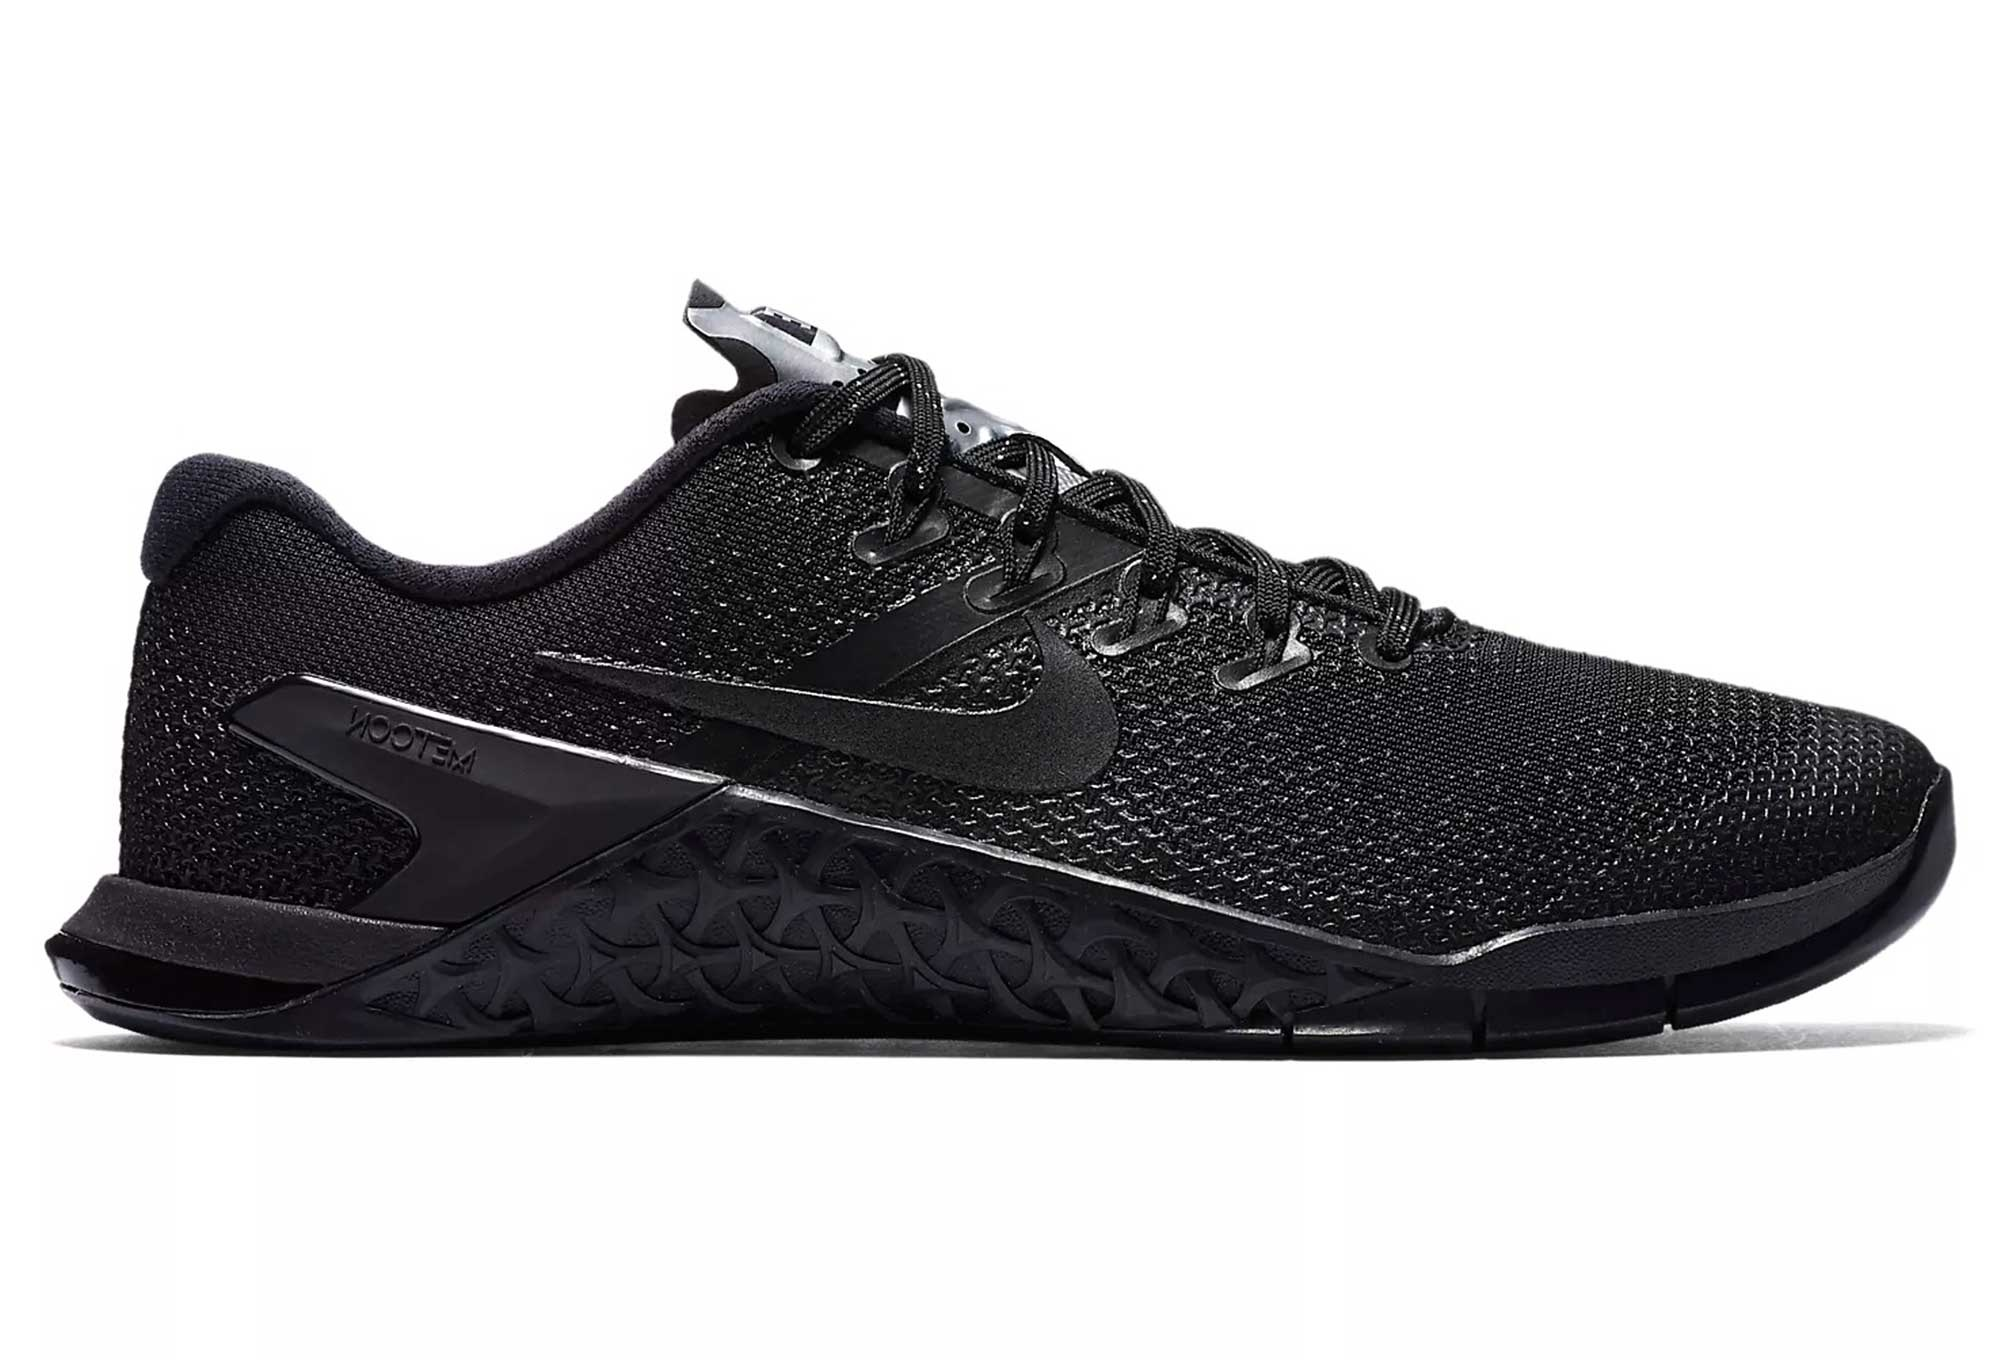 2c02fcf0226 Nike Metcon 4 Selfie Black Chrome Women